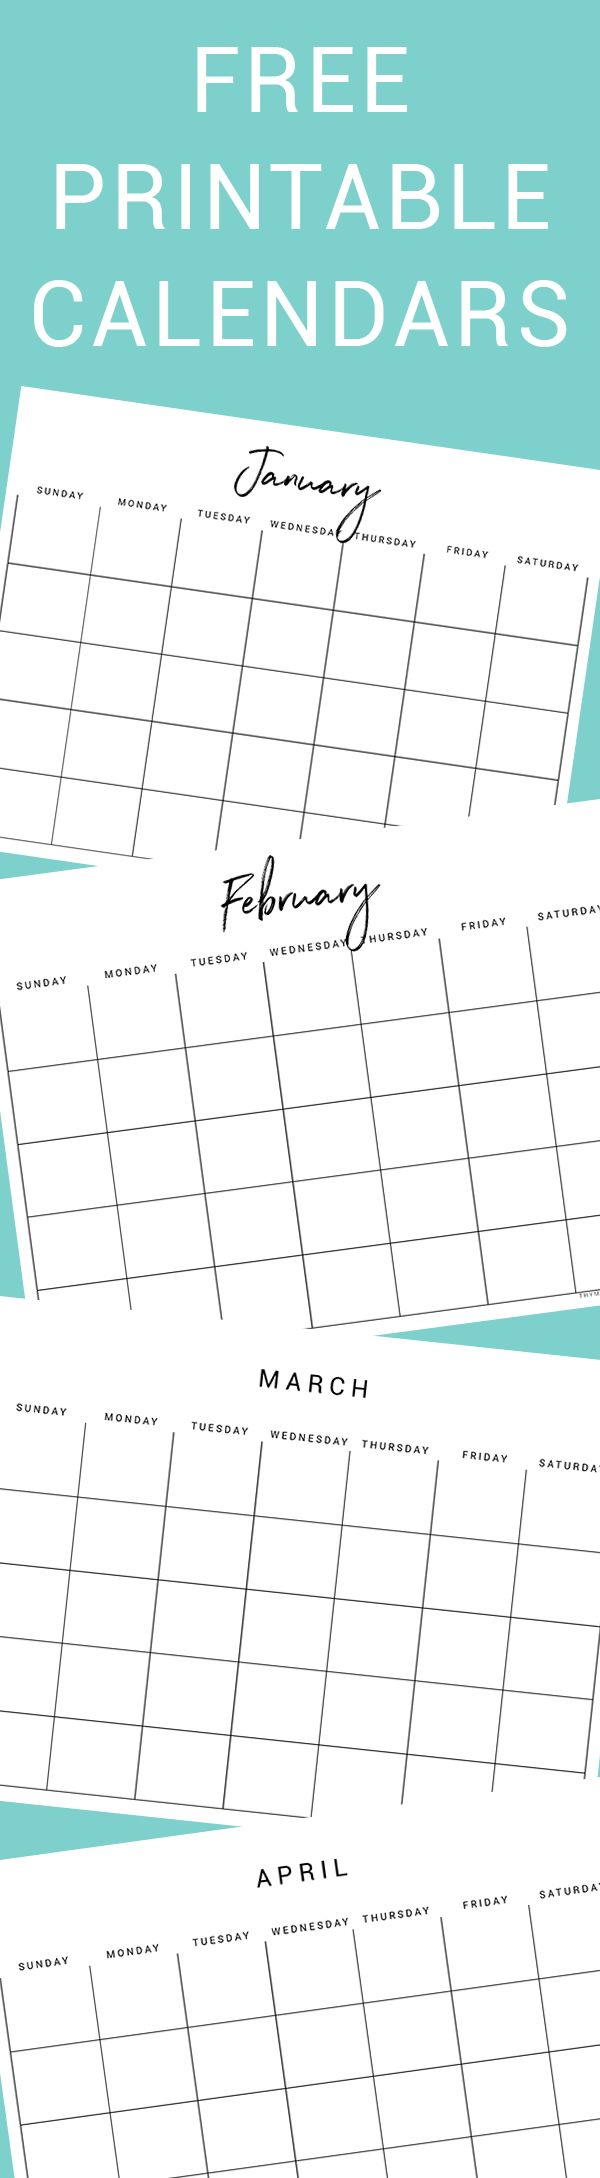 Calendar Typography Tips : Best business tips images on pinterest